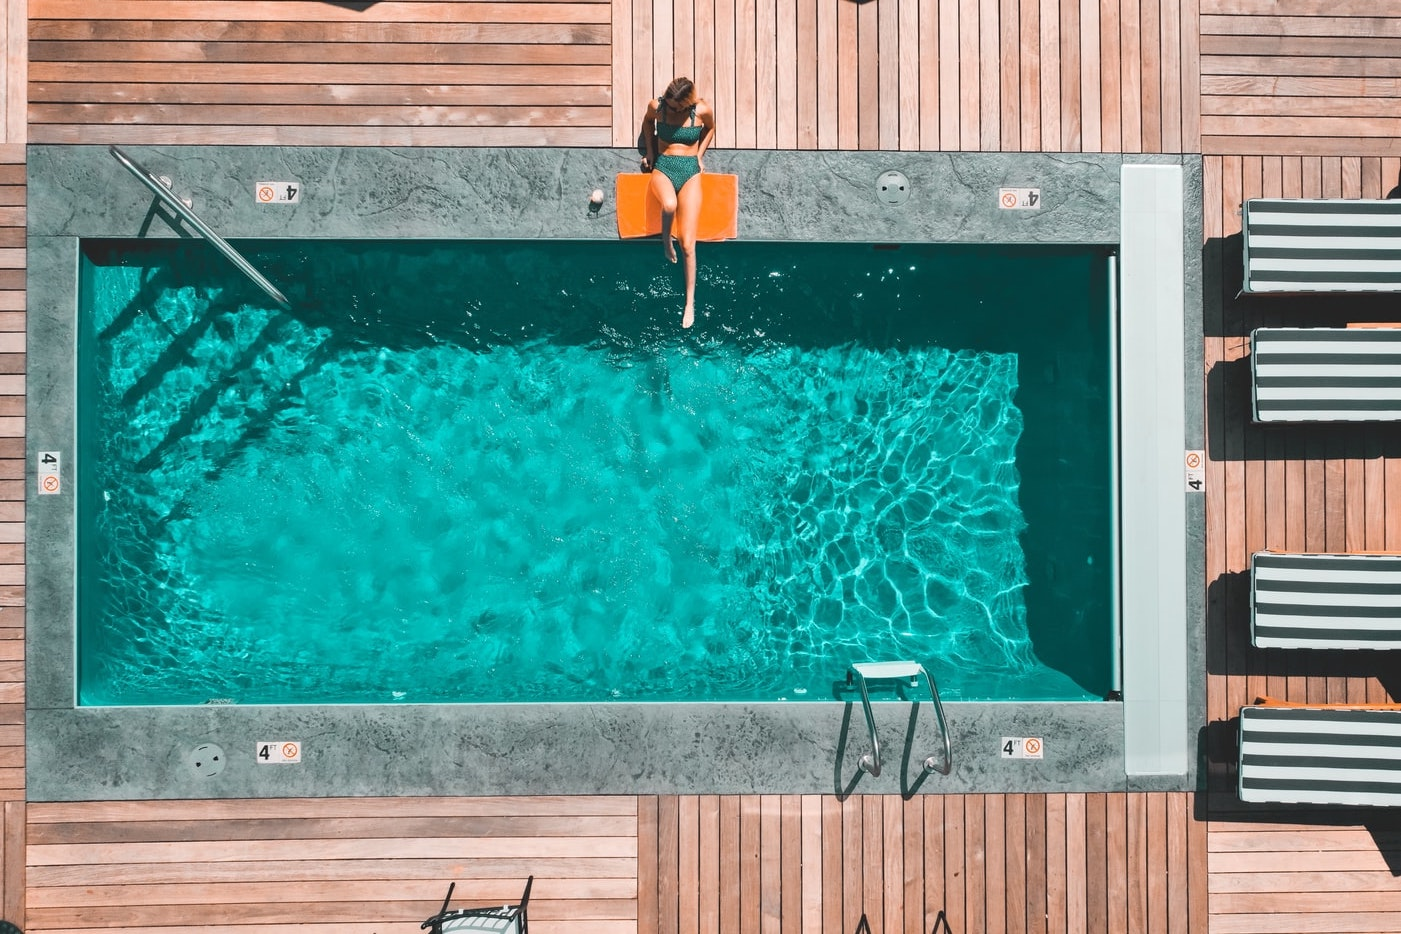 Overhead view of a beautifully maintained, crystal-clear pool